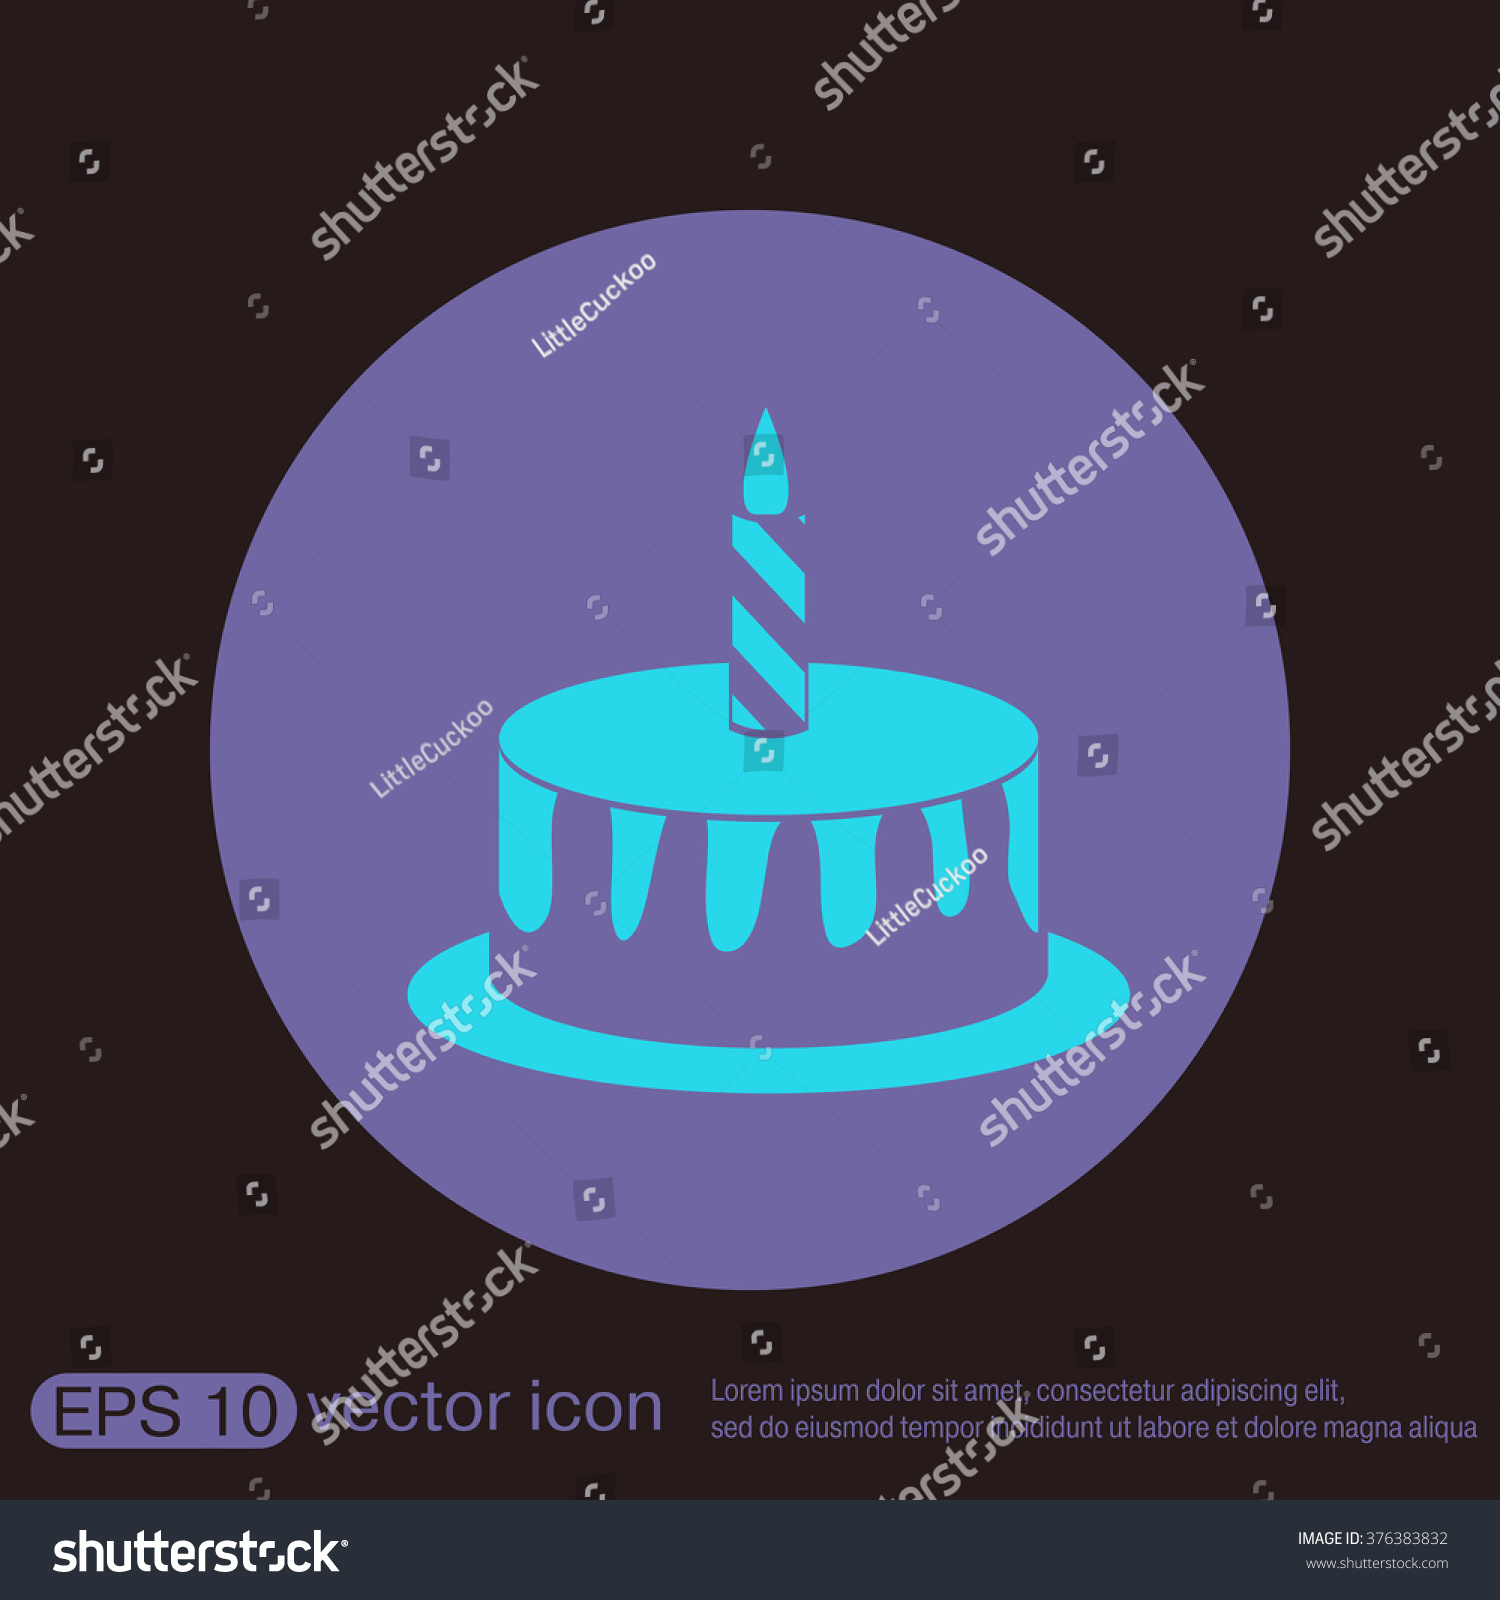 Birthday cake symbol text image collections symbol and sign ideas birthday cake with keyboard symbols images symbol and sign ideas birthday cake symbol text images symbol buycottarizona